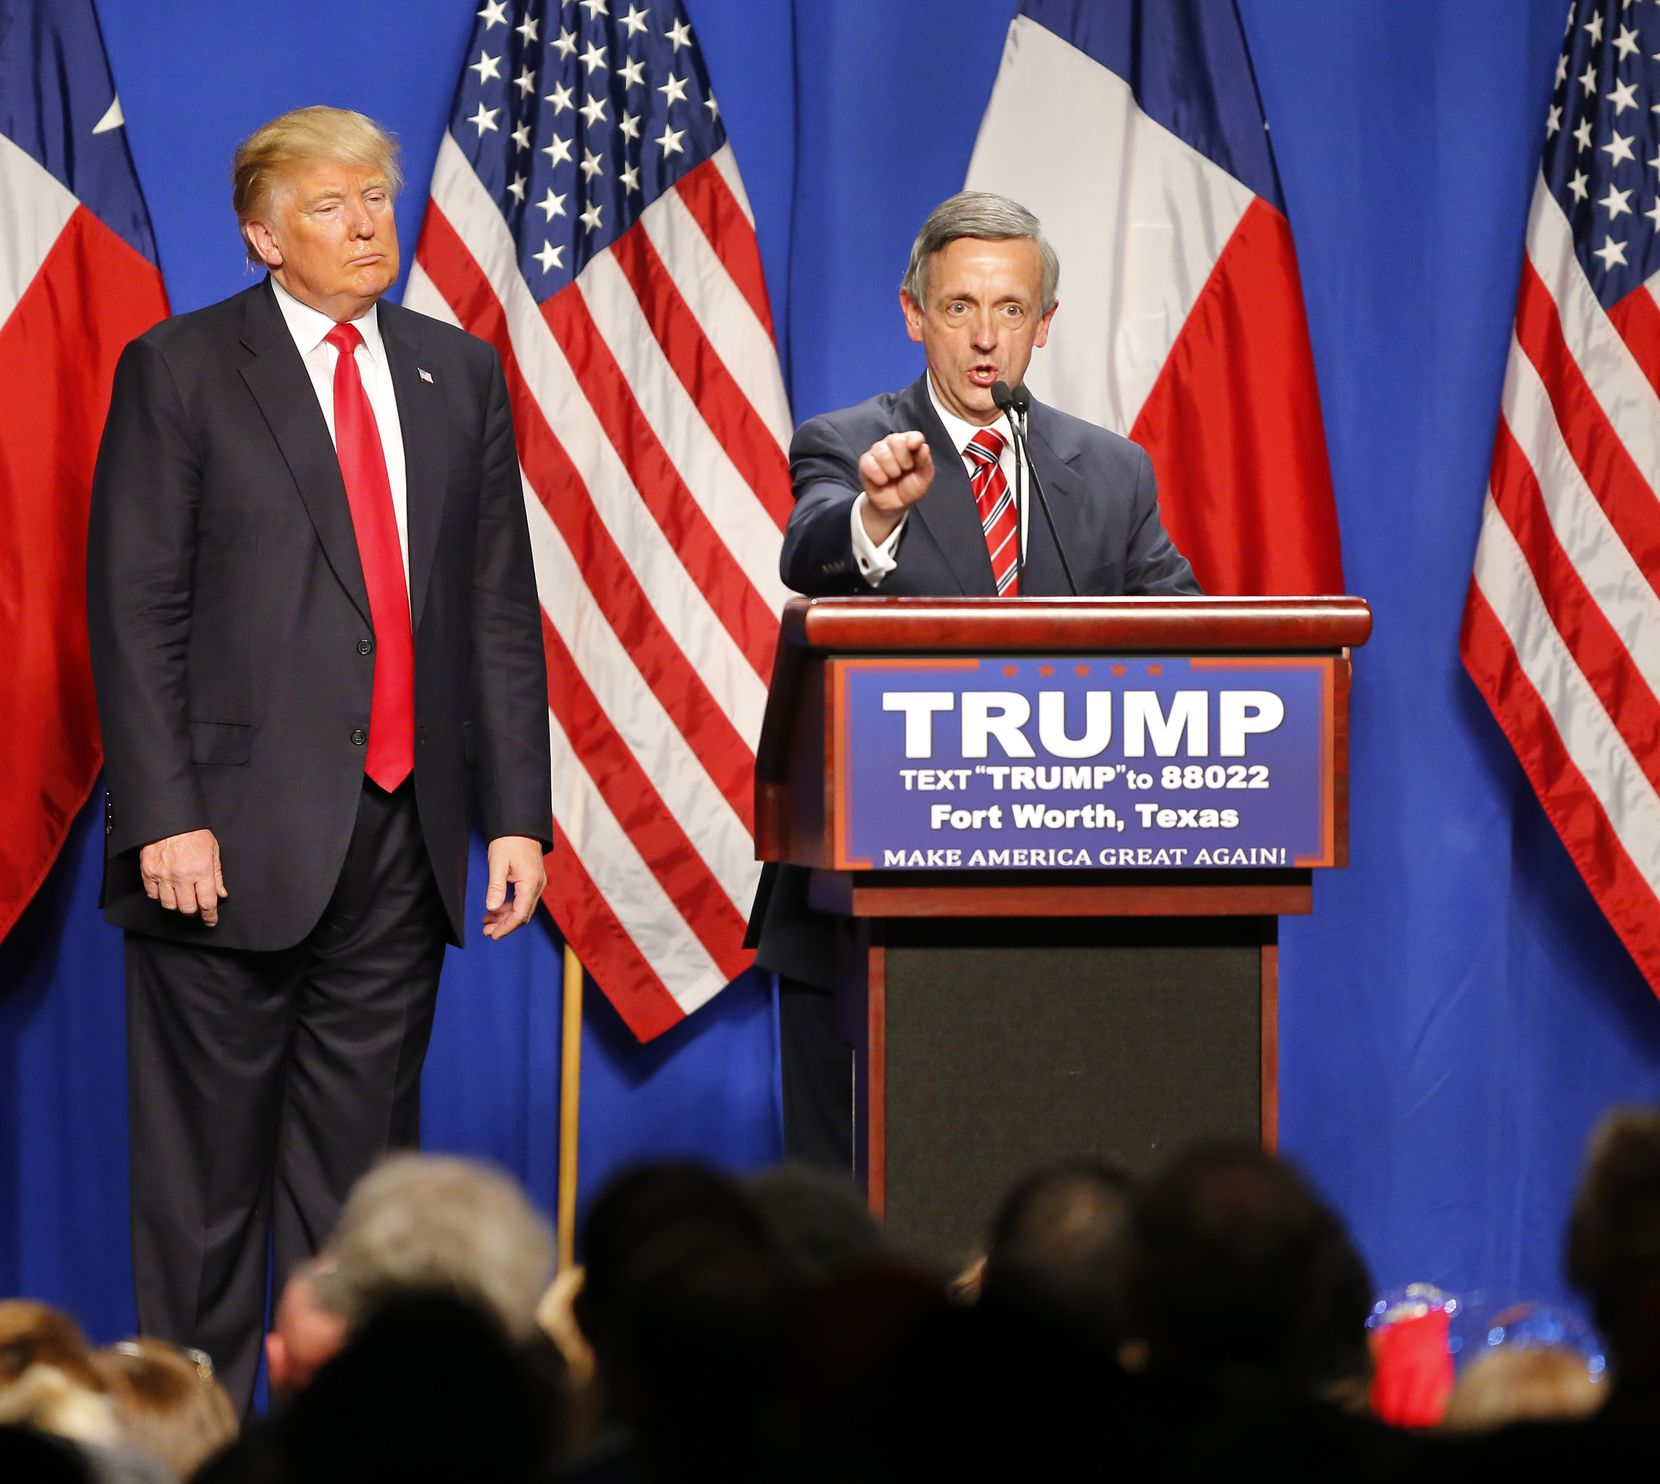 Robert Jeffress, pastor of First Baptist Church in Dallas, speaks at a Trump rally in Fort Worth in February.